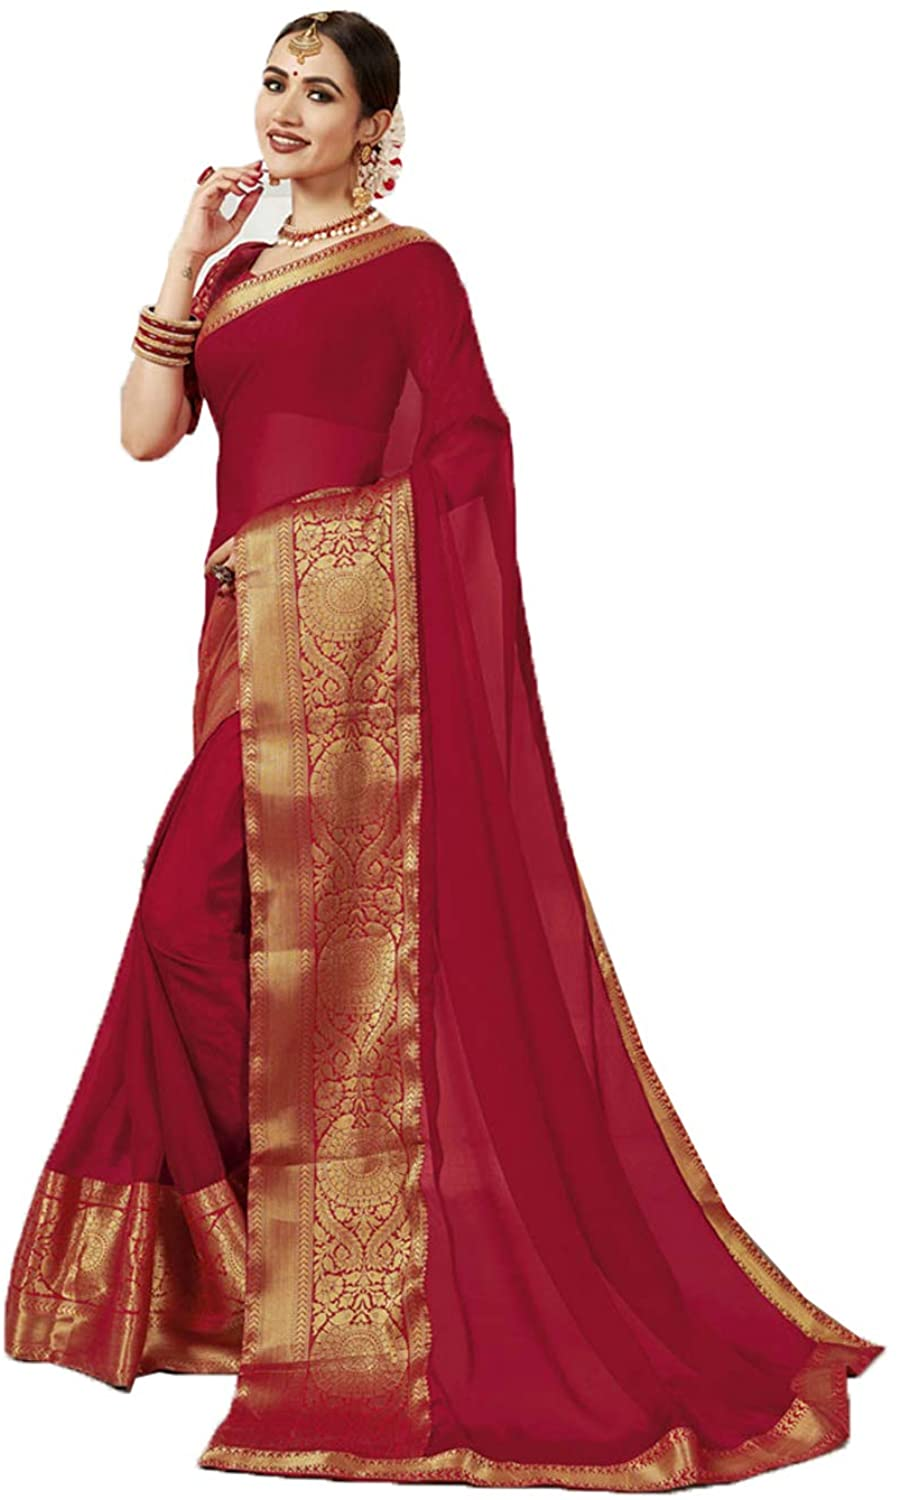 Saree for Women Bollywood Wedding Designer Red Sari with Unstitched Blouse. ICW2559-8